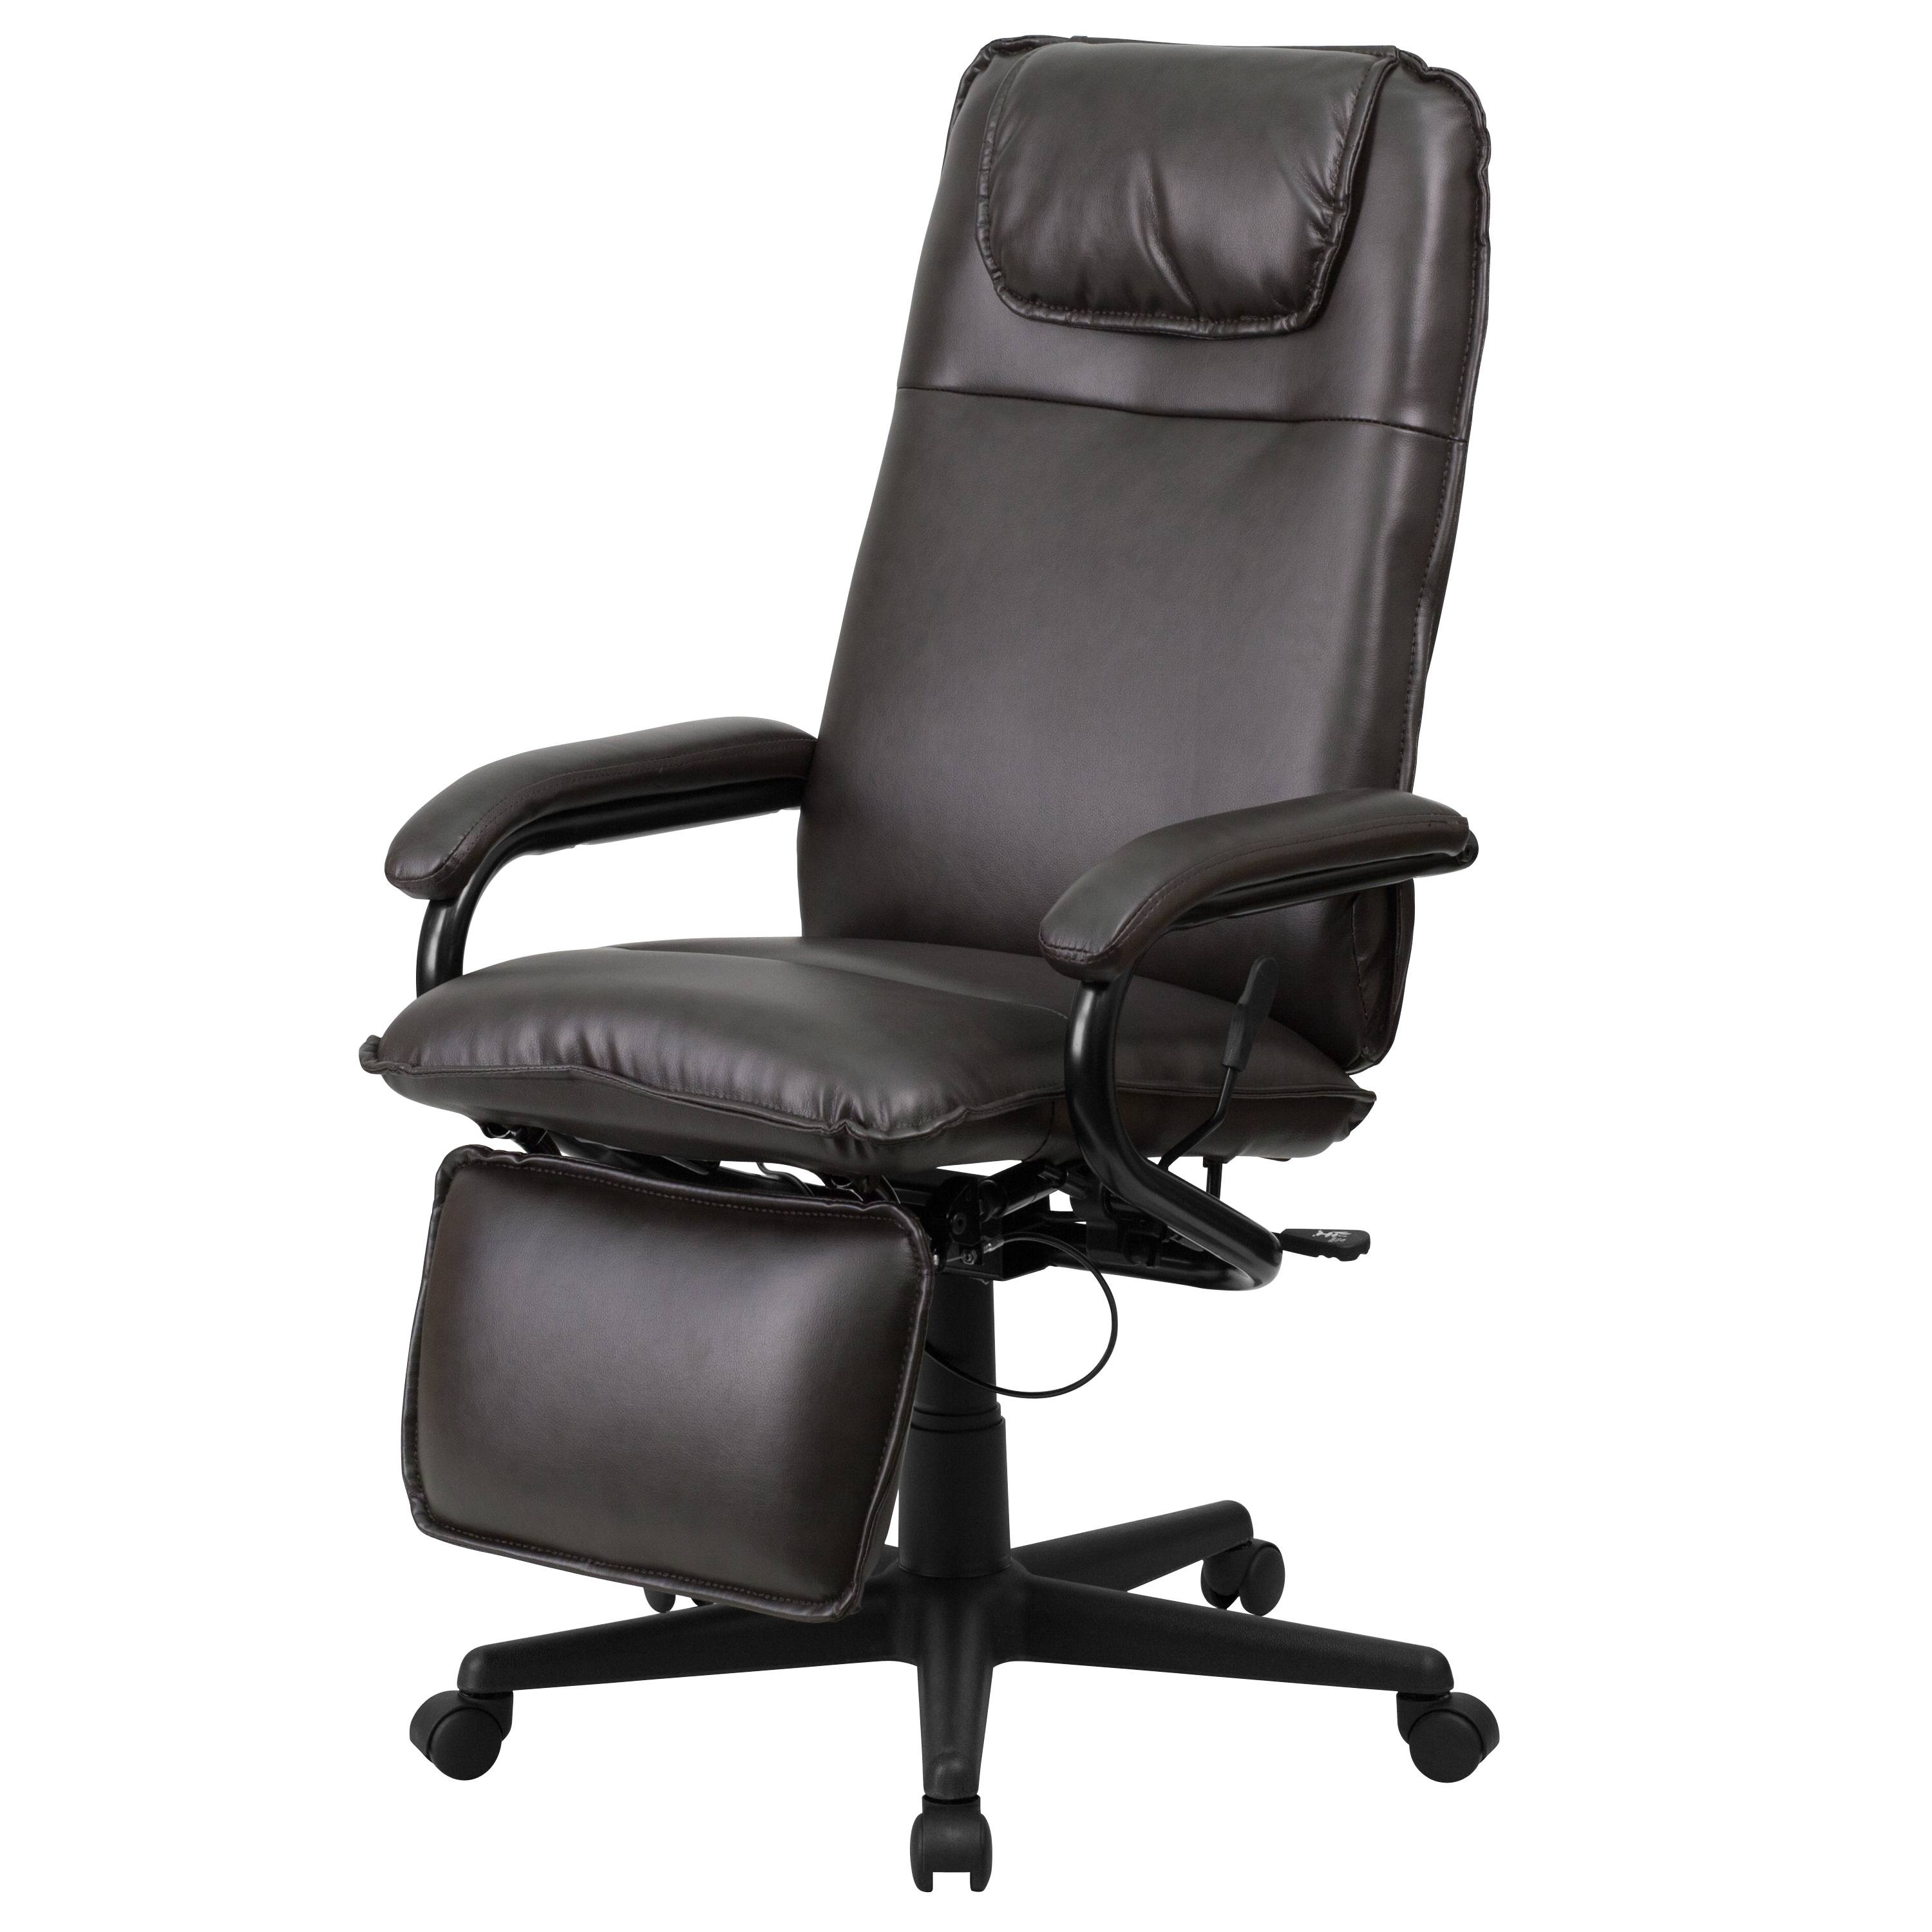 Executive Reclining Office Chairs Pertaining To Recent High Back Leather Executive Reclining Office Chair – Free Shipping (Gallery 2 of 20)